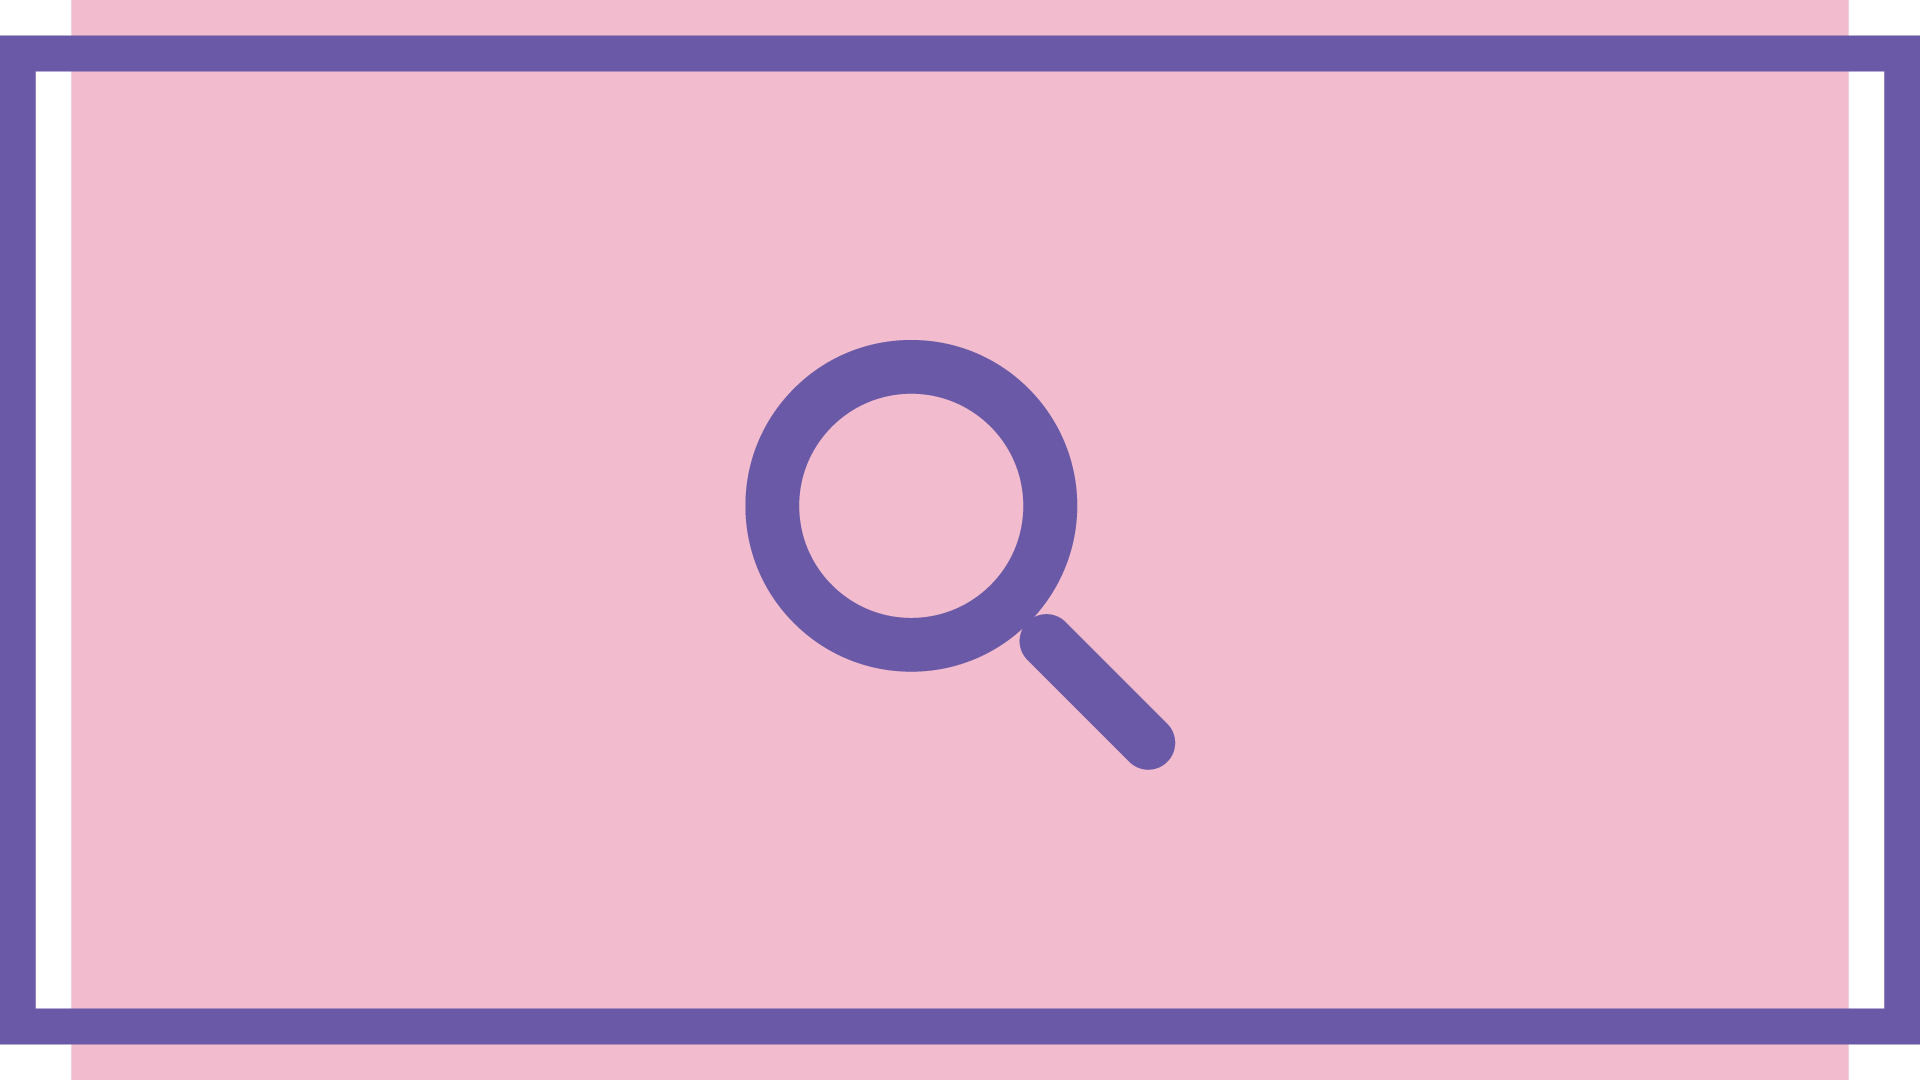 A purple magnifying glass icon on a pink background.